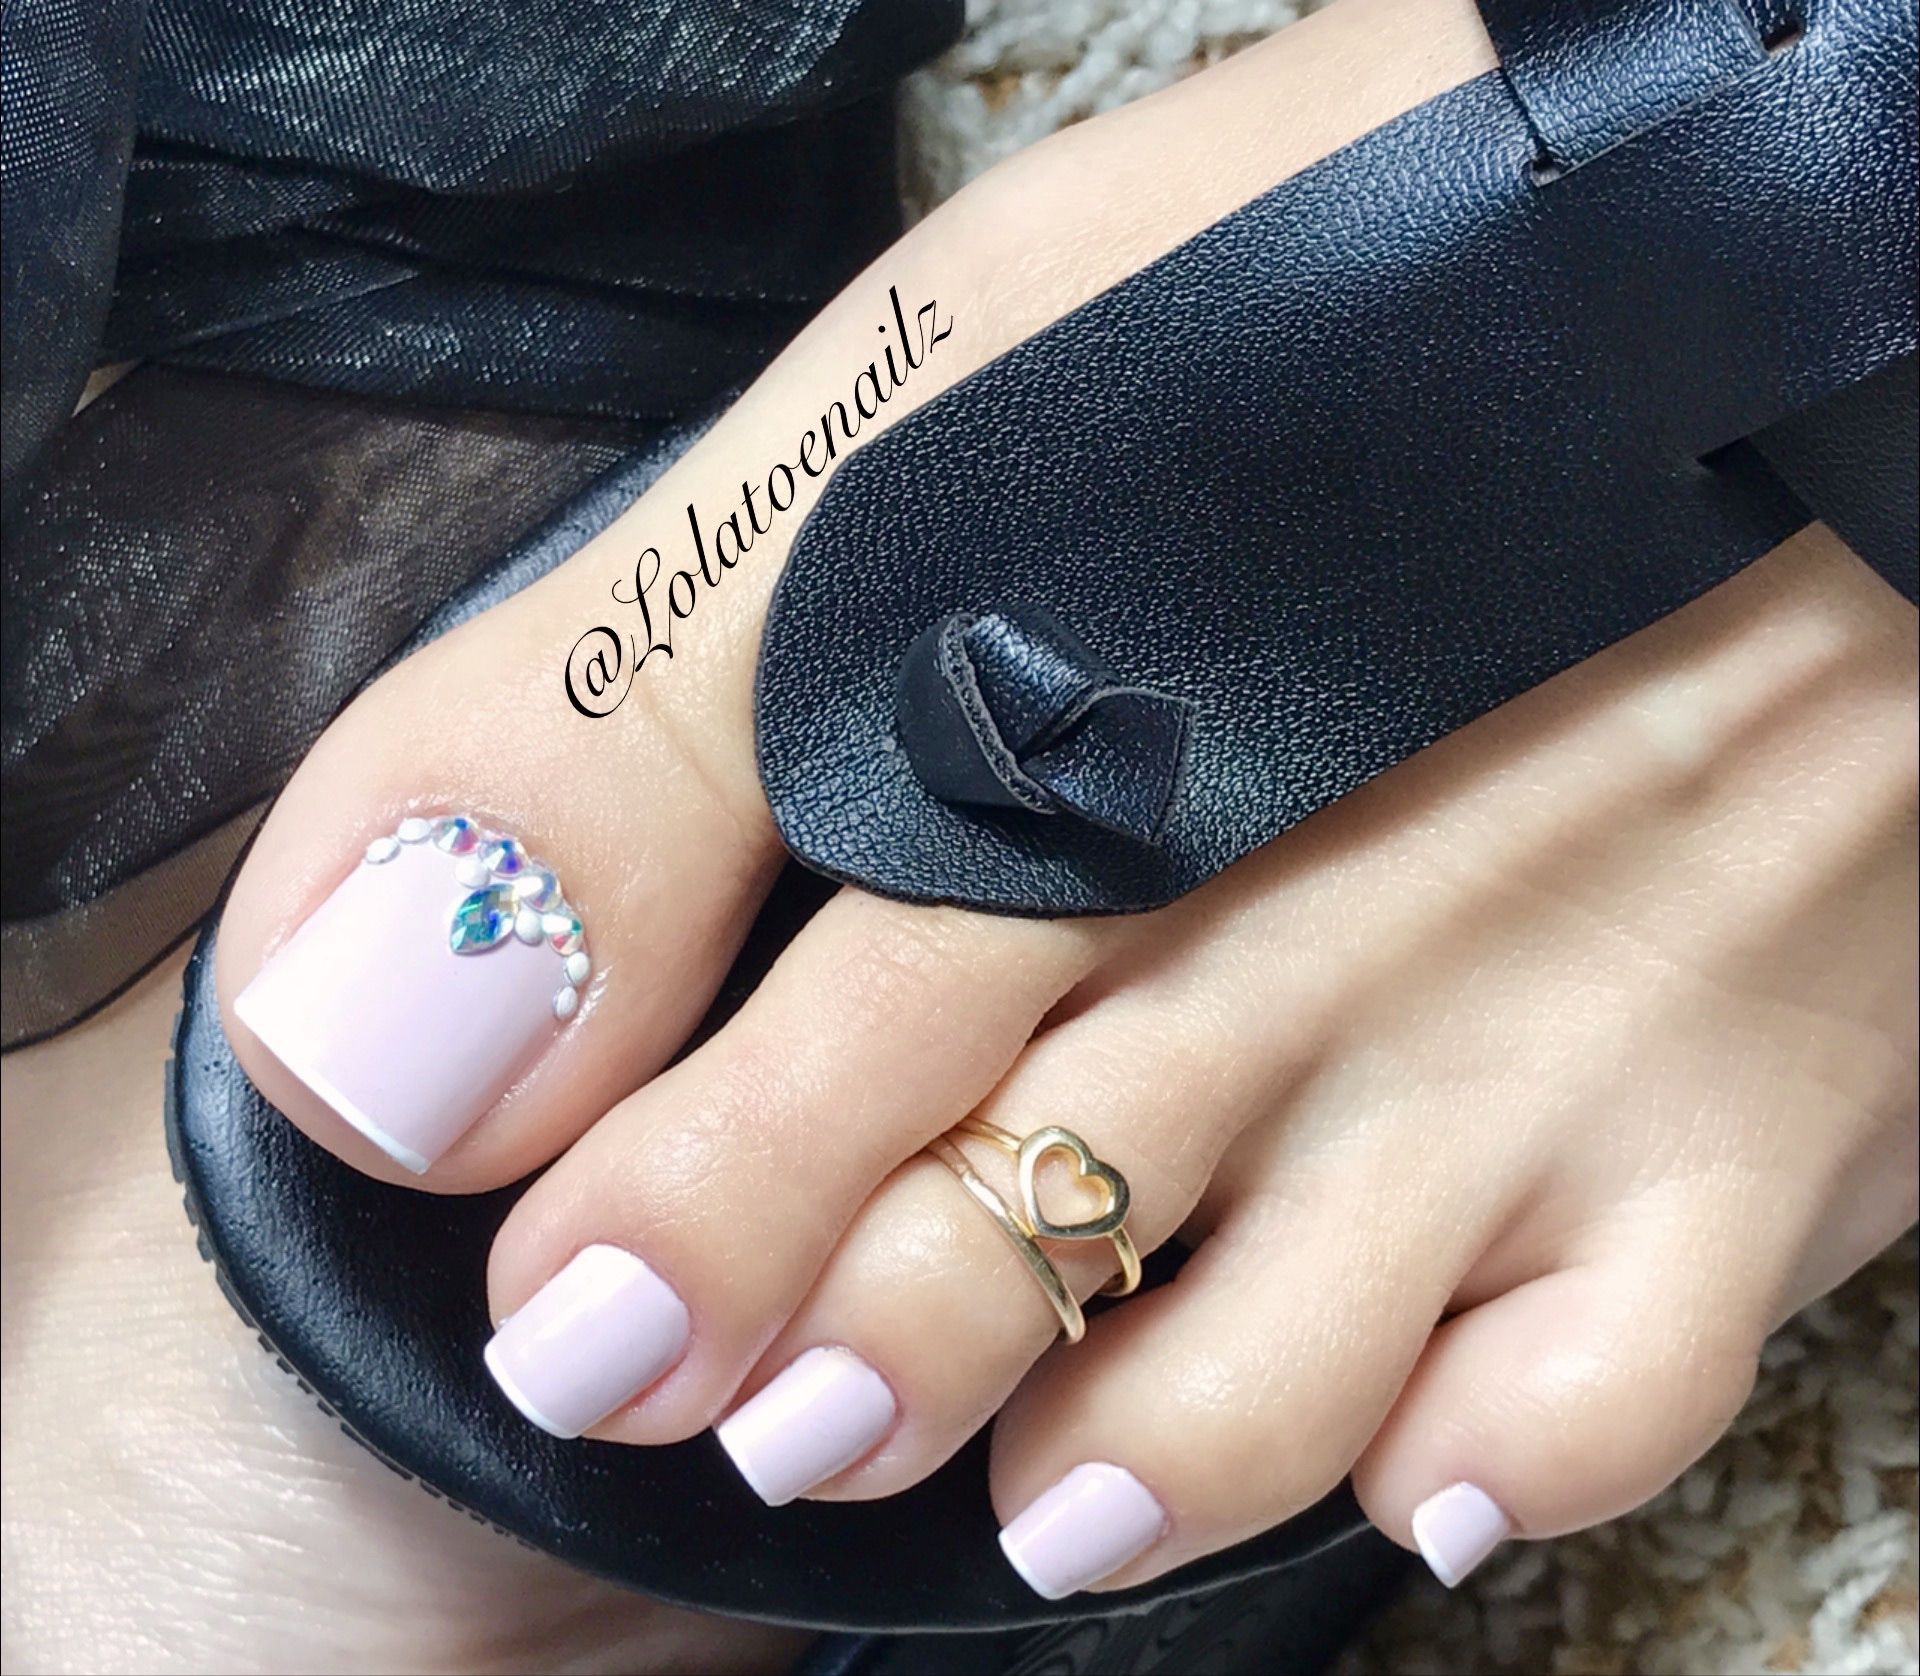 French Pedicure with design stones | Toe nail designs. | Pinterest